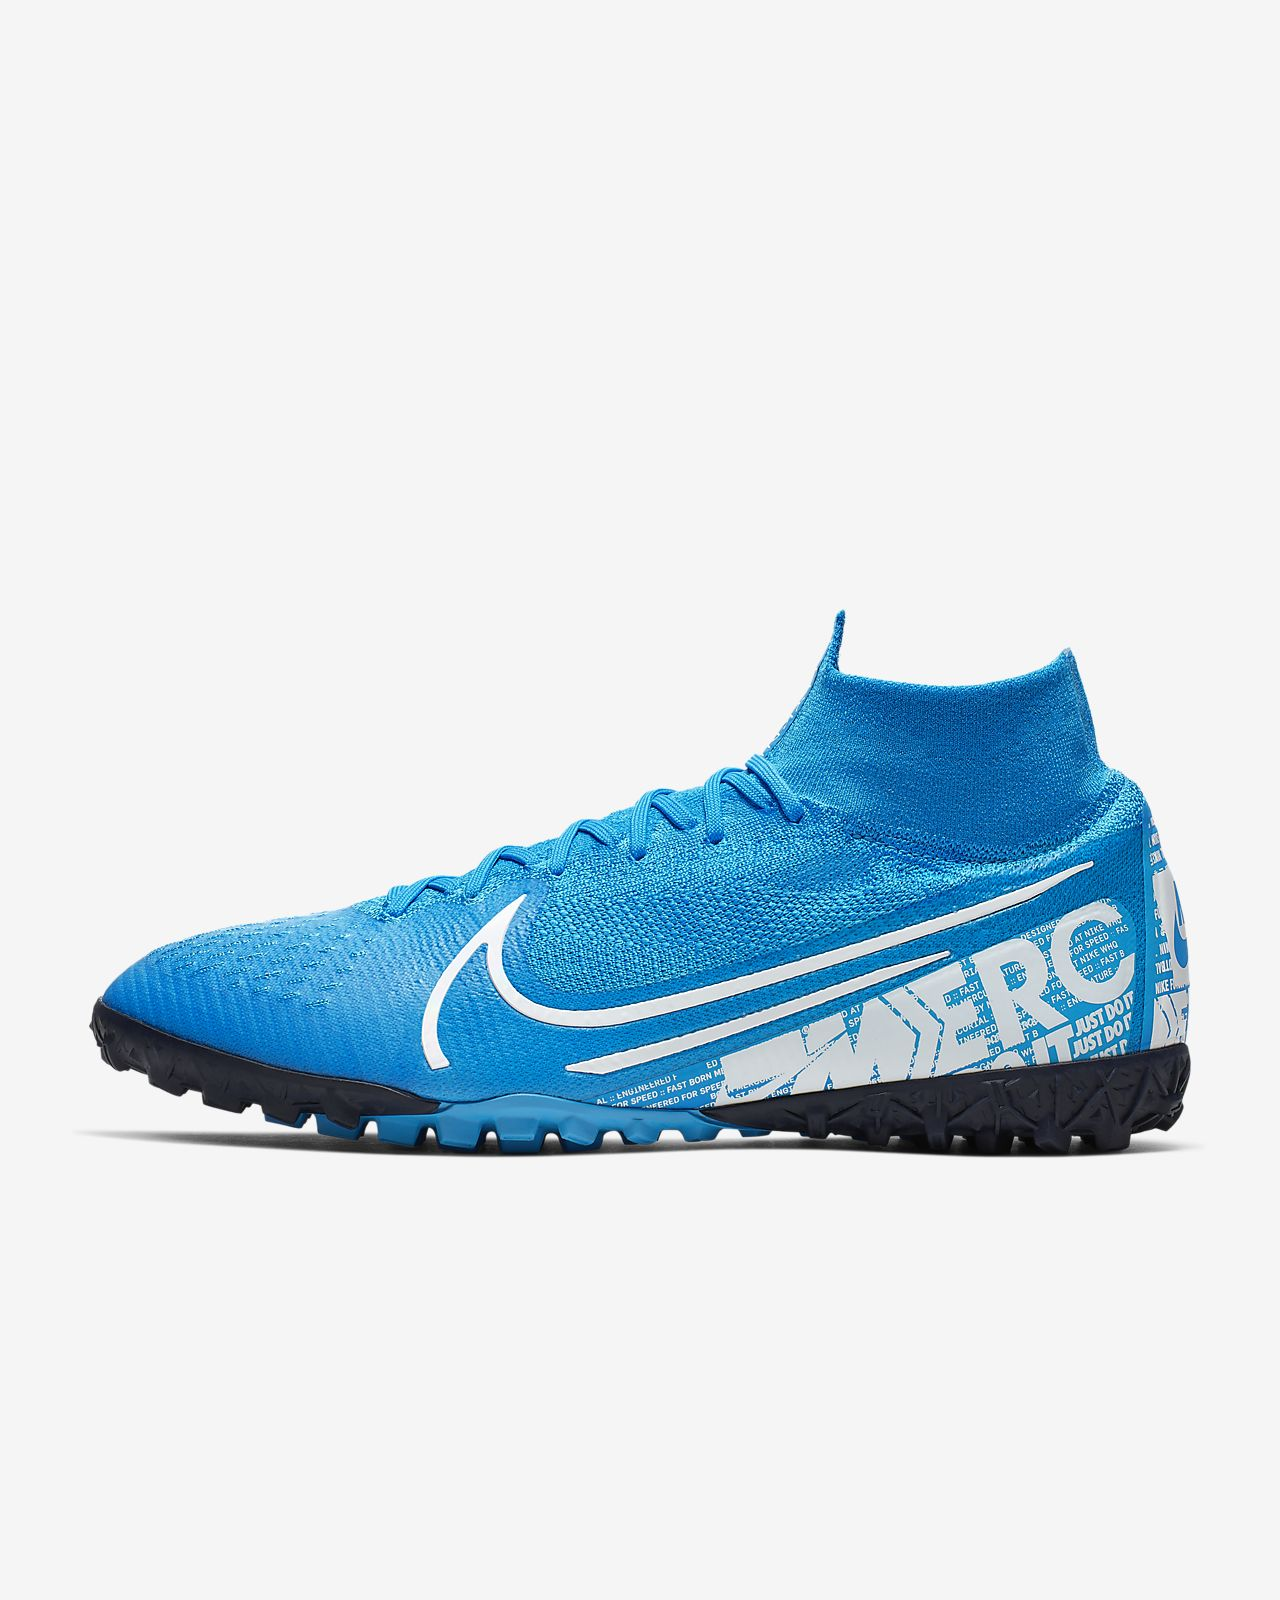 magasin d'usine 28c75 7e259 Chaussure de football pour surface synthétique Nike Mercurial Superfly 7  Elite TF